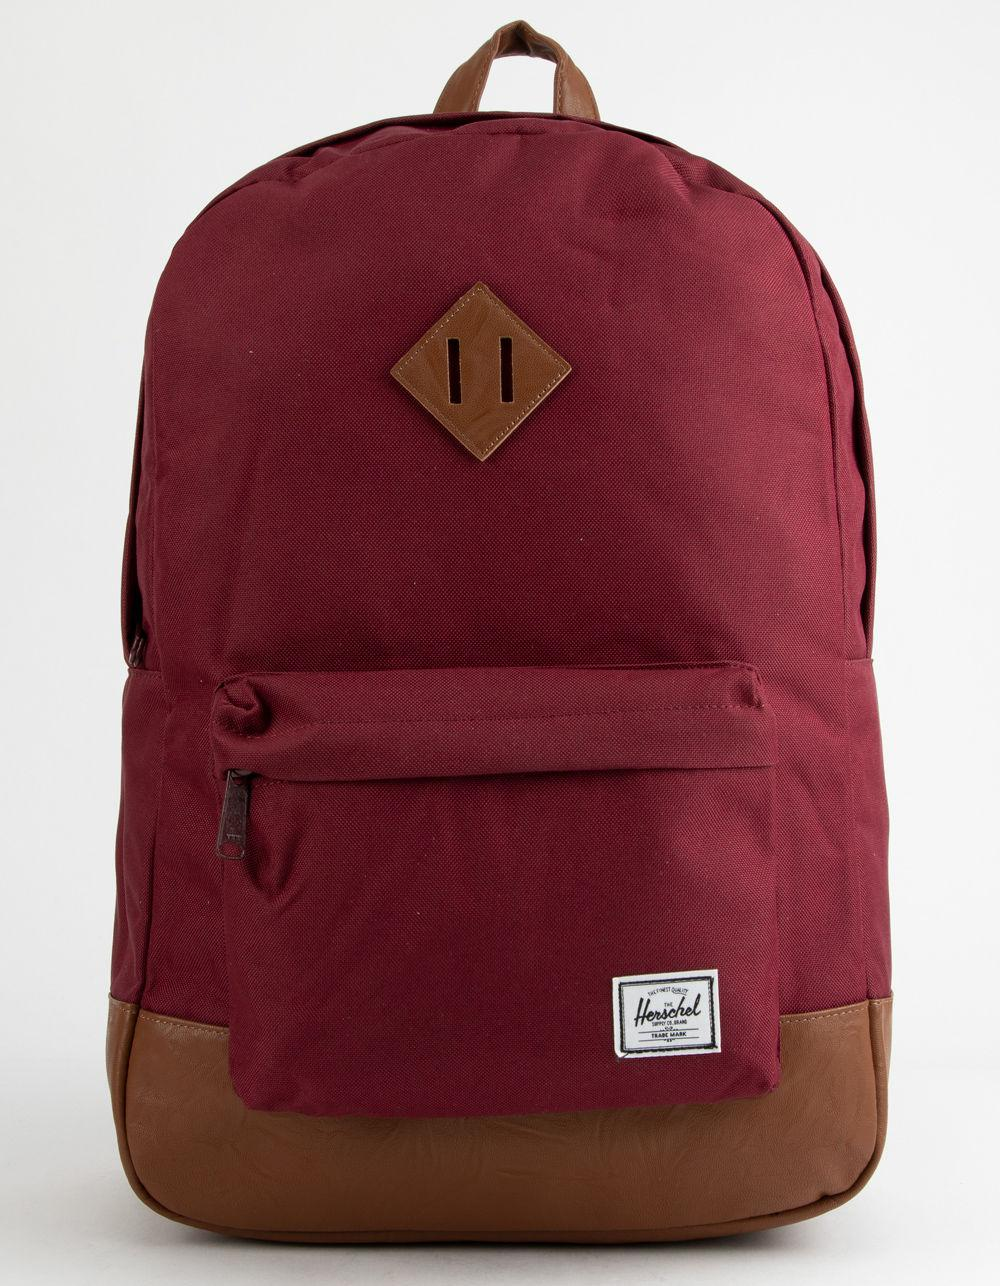 b7be490ee4b Lyst - Herschel Supply Co. Heritage Windsor Wine   Tan Backpack in ...